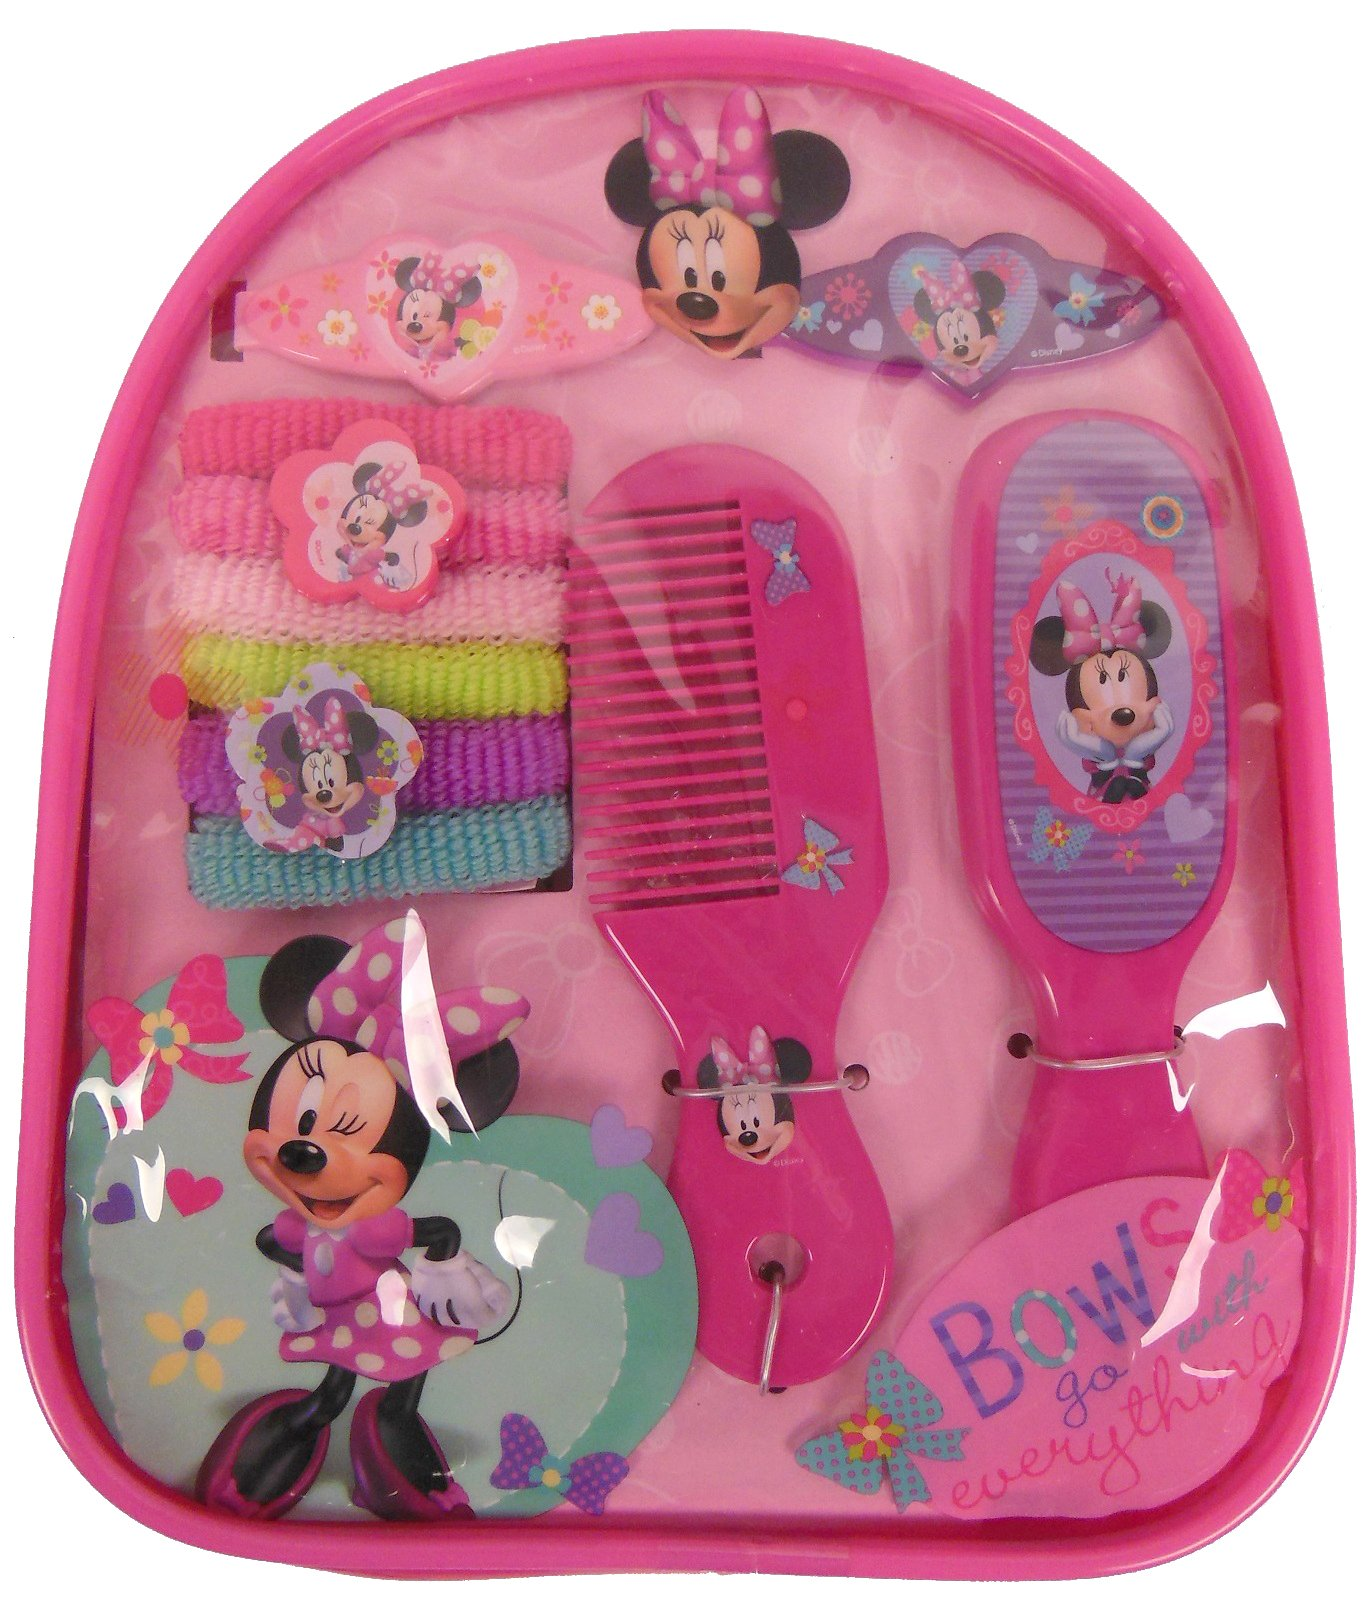 Disney Junior Minnie Mouse Bowtique Hair Accessory Gift Set (MM402) by Disney, Acpbags (Image #1)